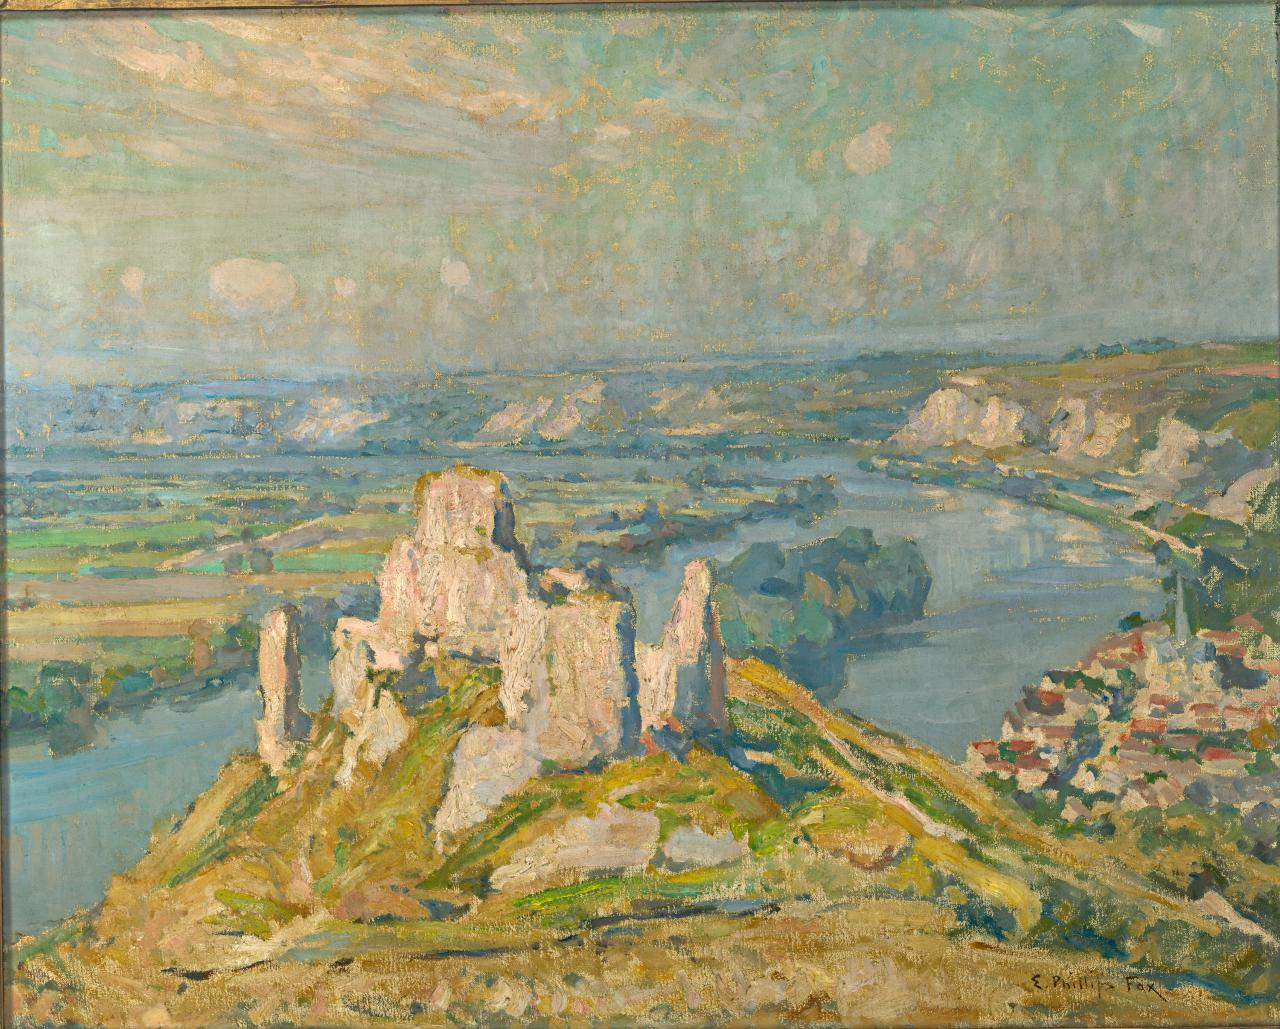 Château Gaillard on the Seine